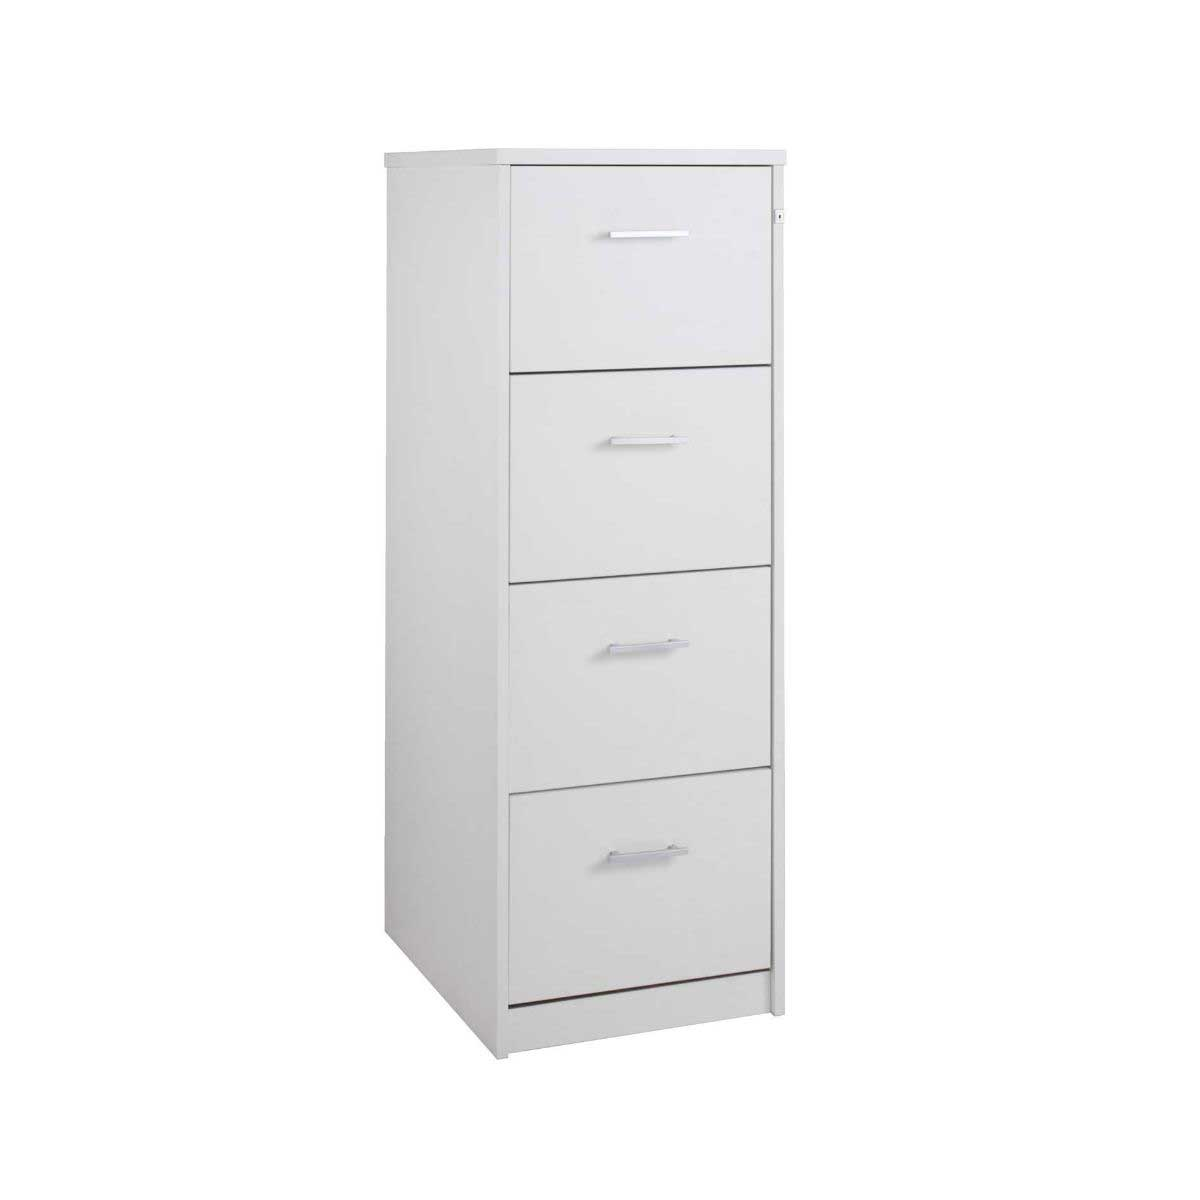 Momento Deluxe 4 Drawer Filing Cabinet, White